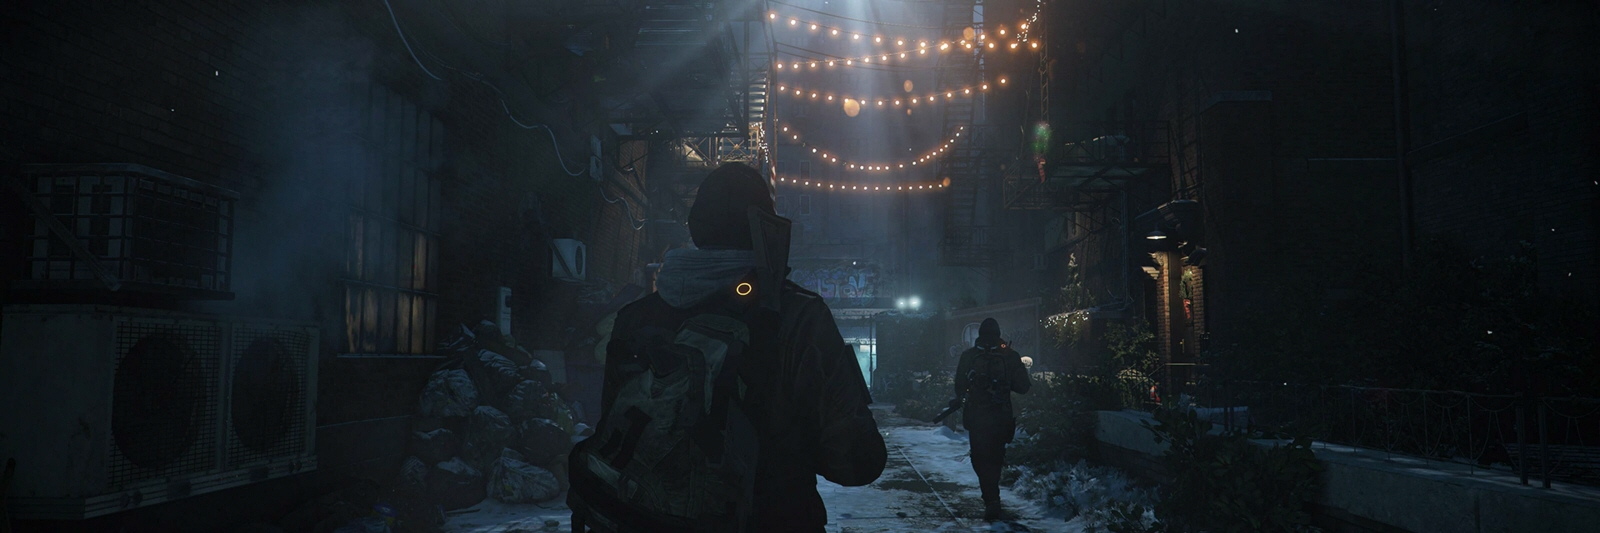 Screenshot from the game Tom Clancy's The Division